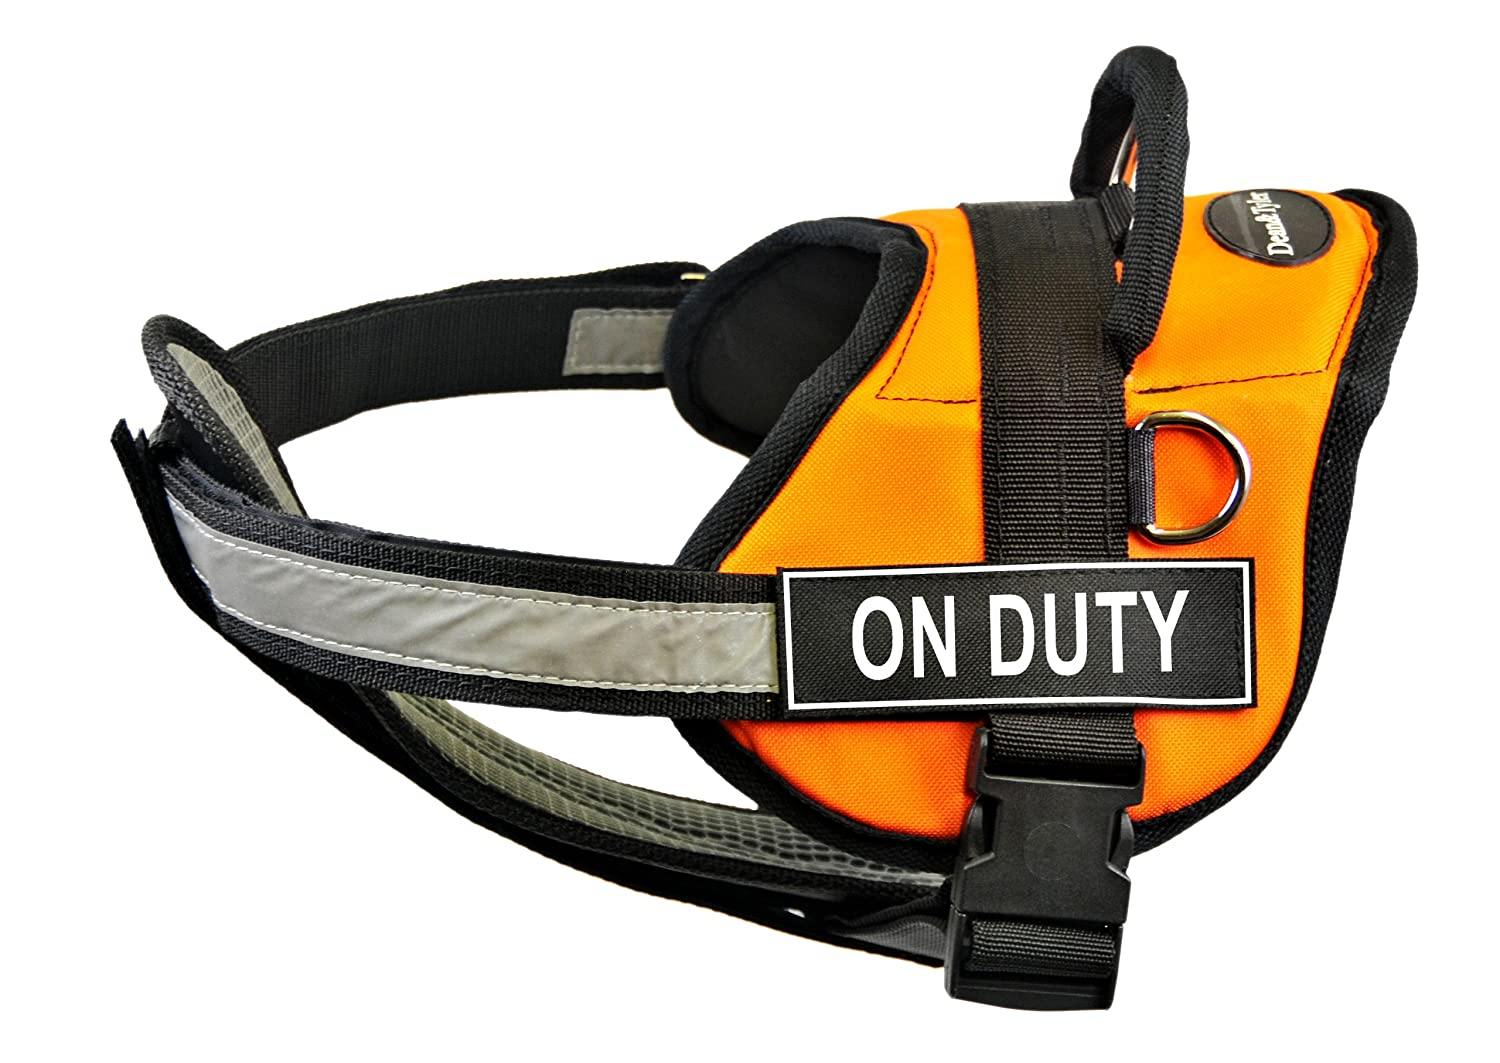 Dean & Tyler 25-Inch to 34-Inch On Duty Dog Harness with Padded Reflective Chest Straps, Small, orange Black